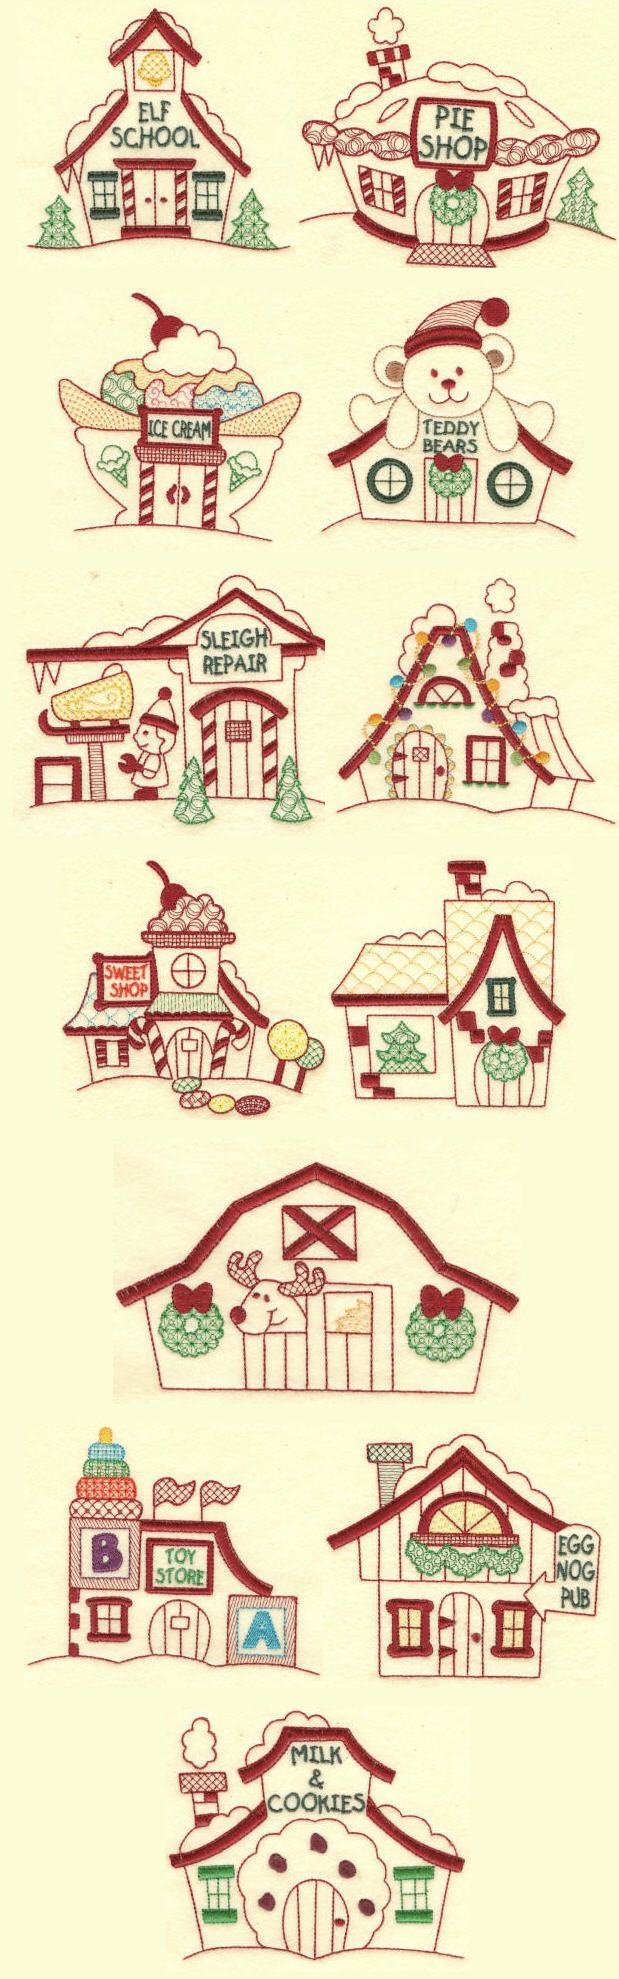 Embroidery Designs | Free Machine Embroidery Designs | Santa's Village colorwork